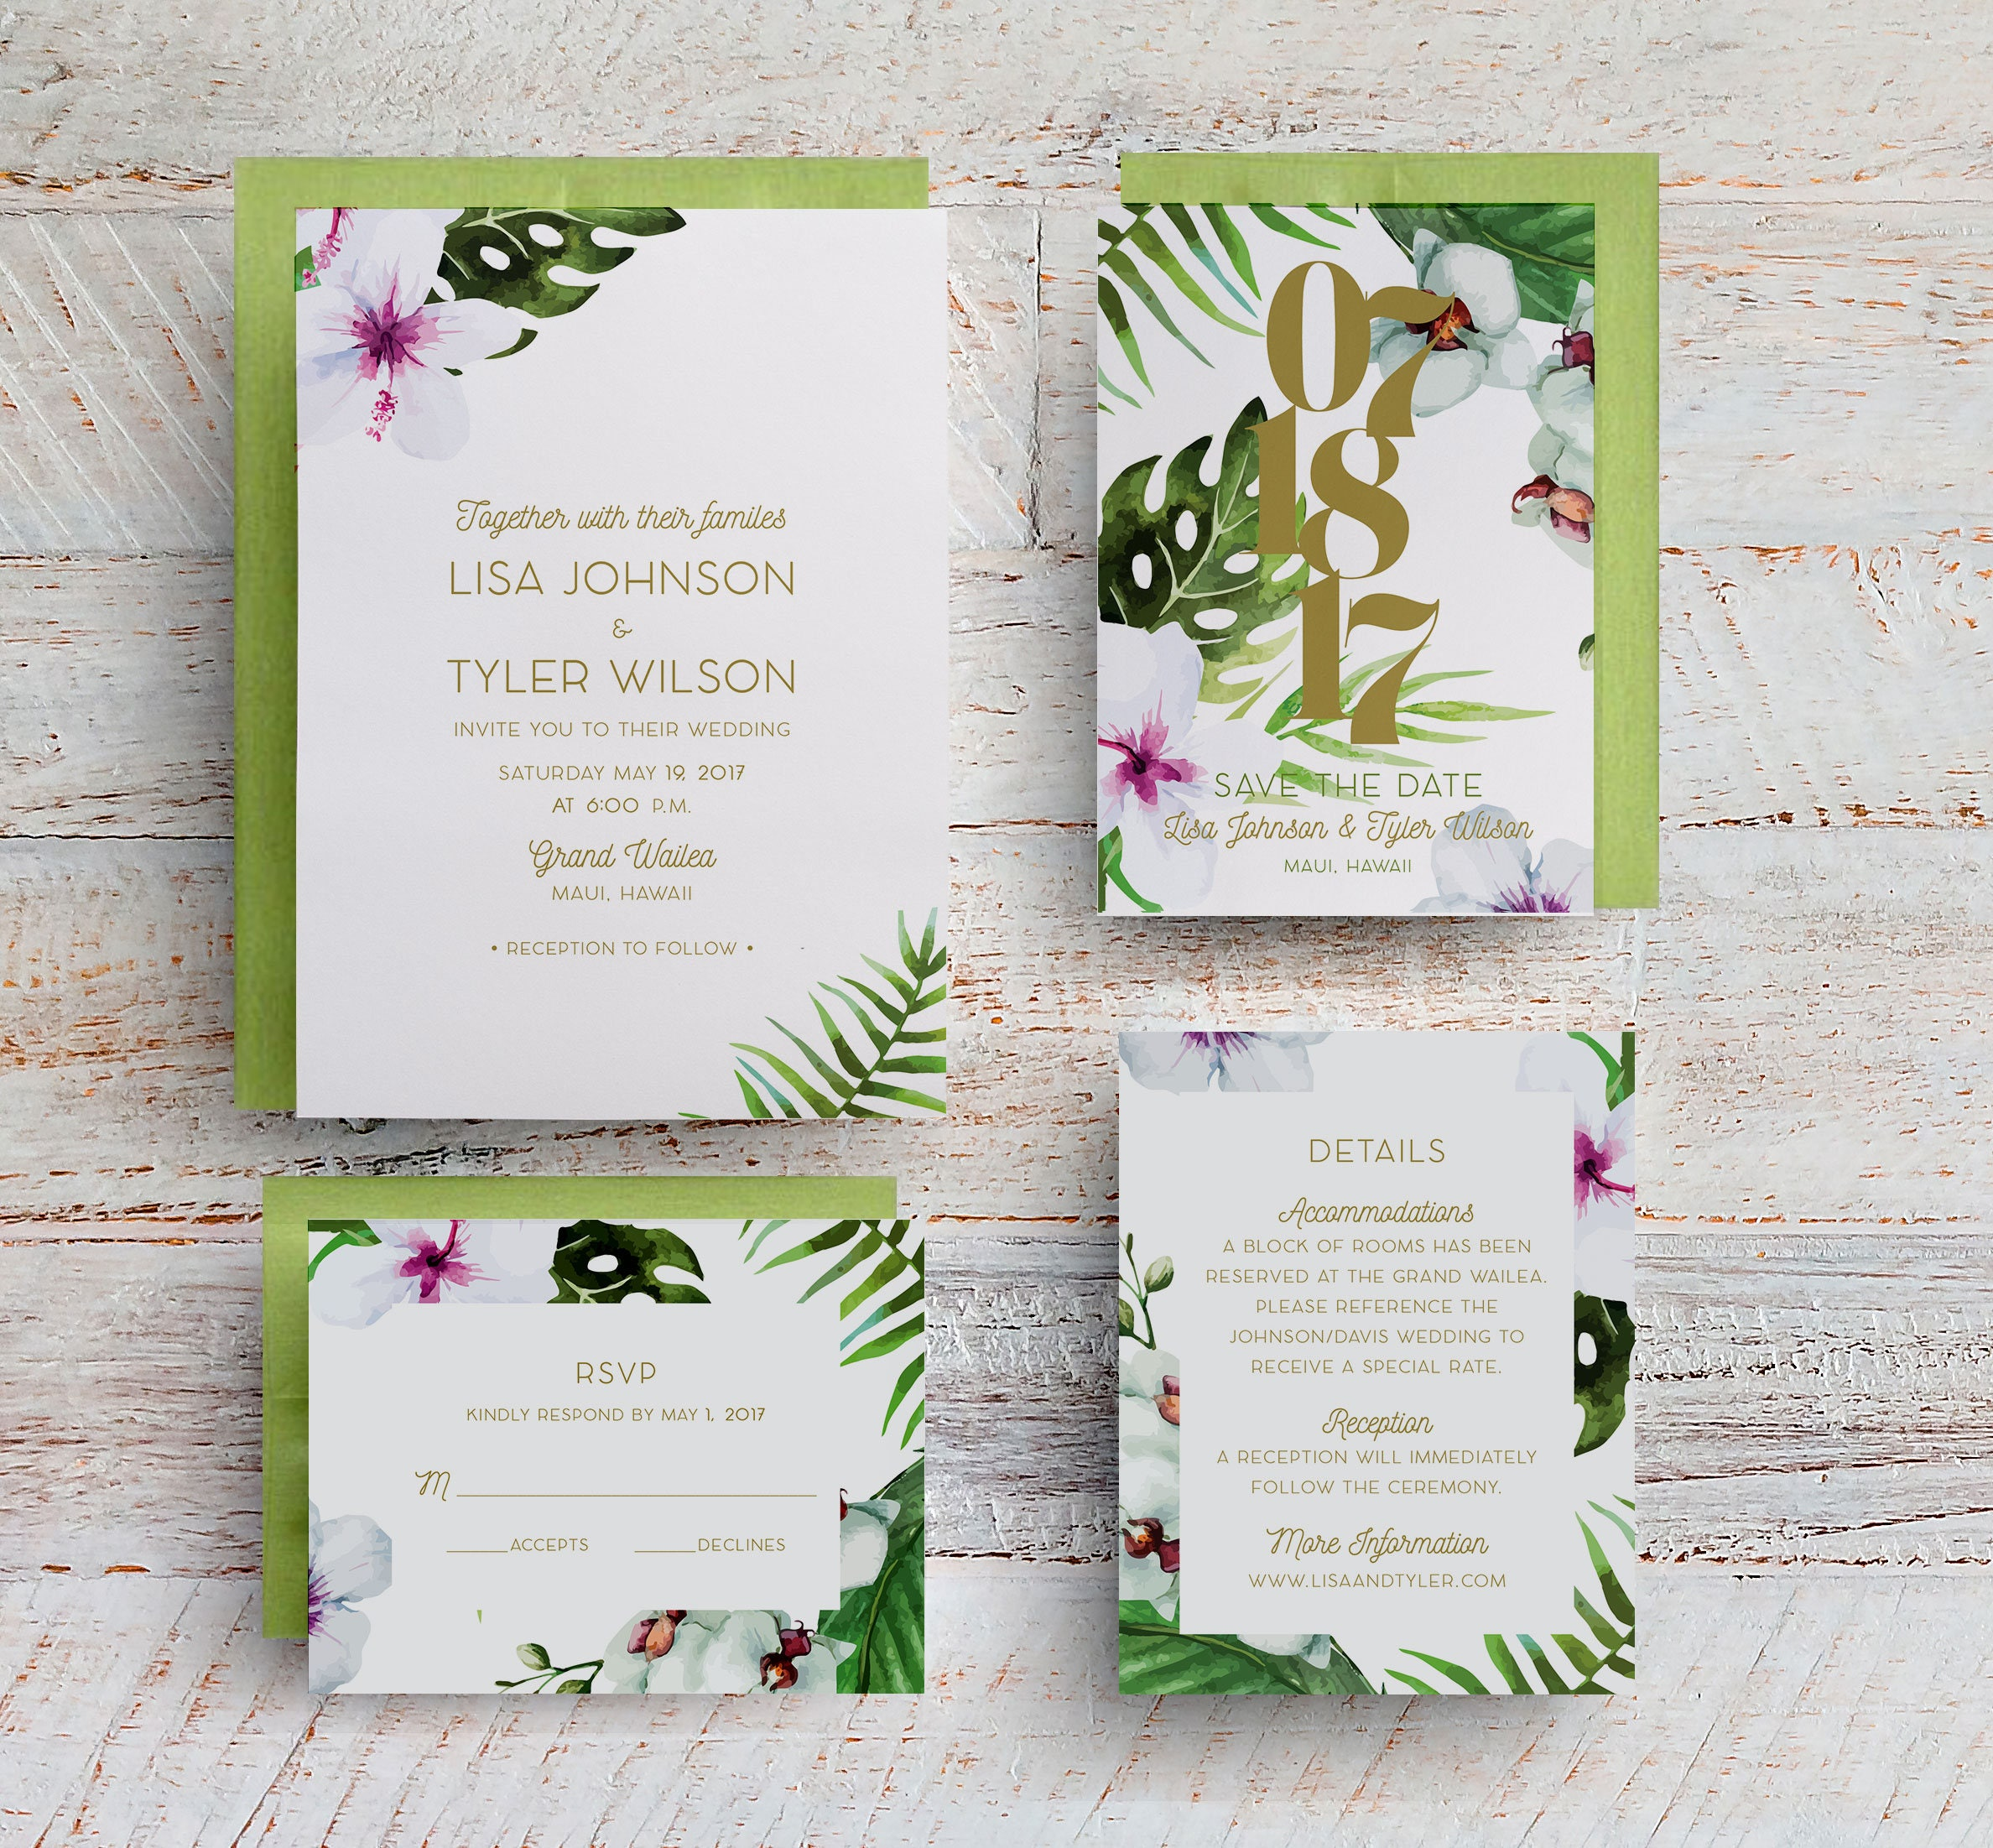 50: Hawaiian Beach Theme Wedding Invitation At Websimilar.org